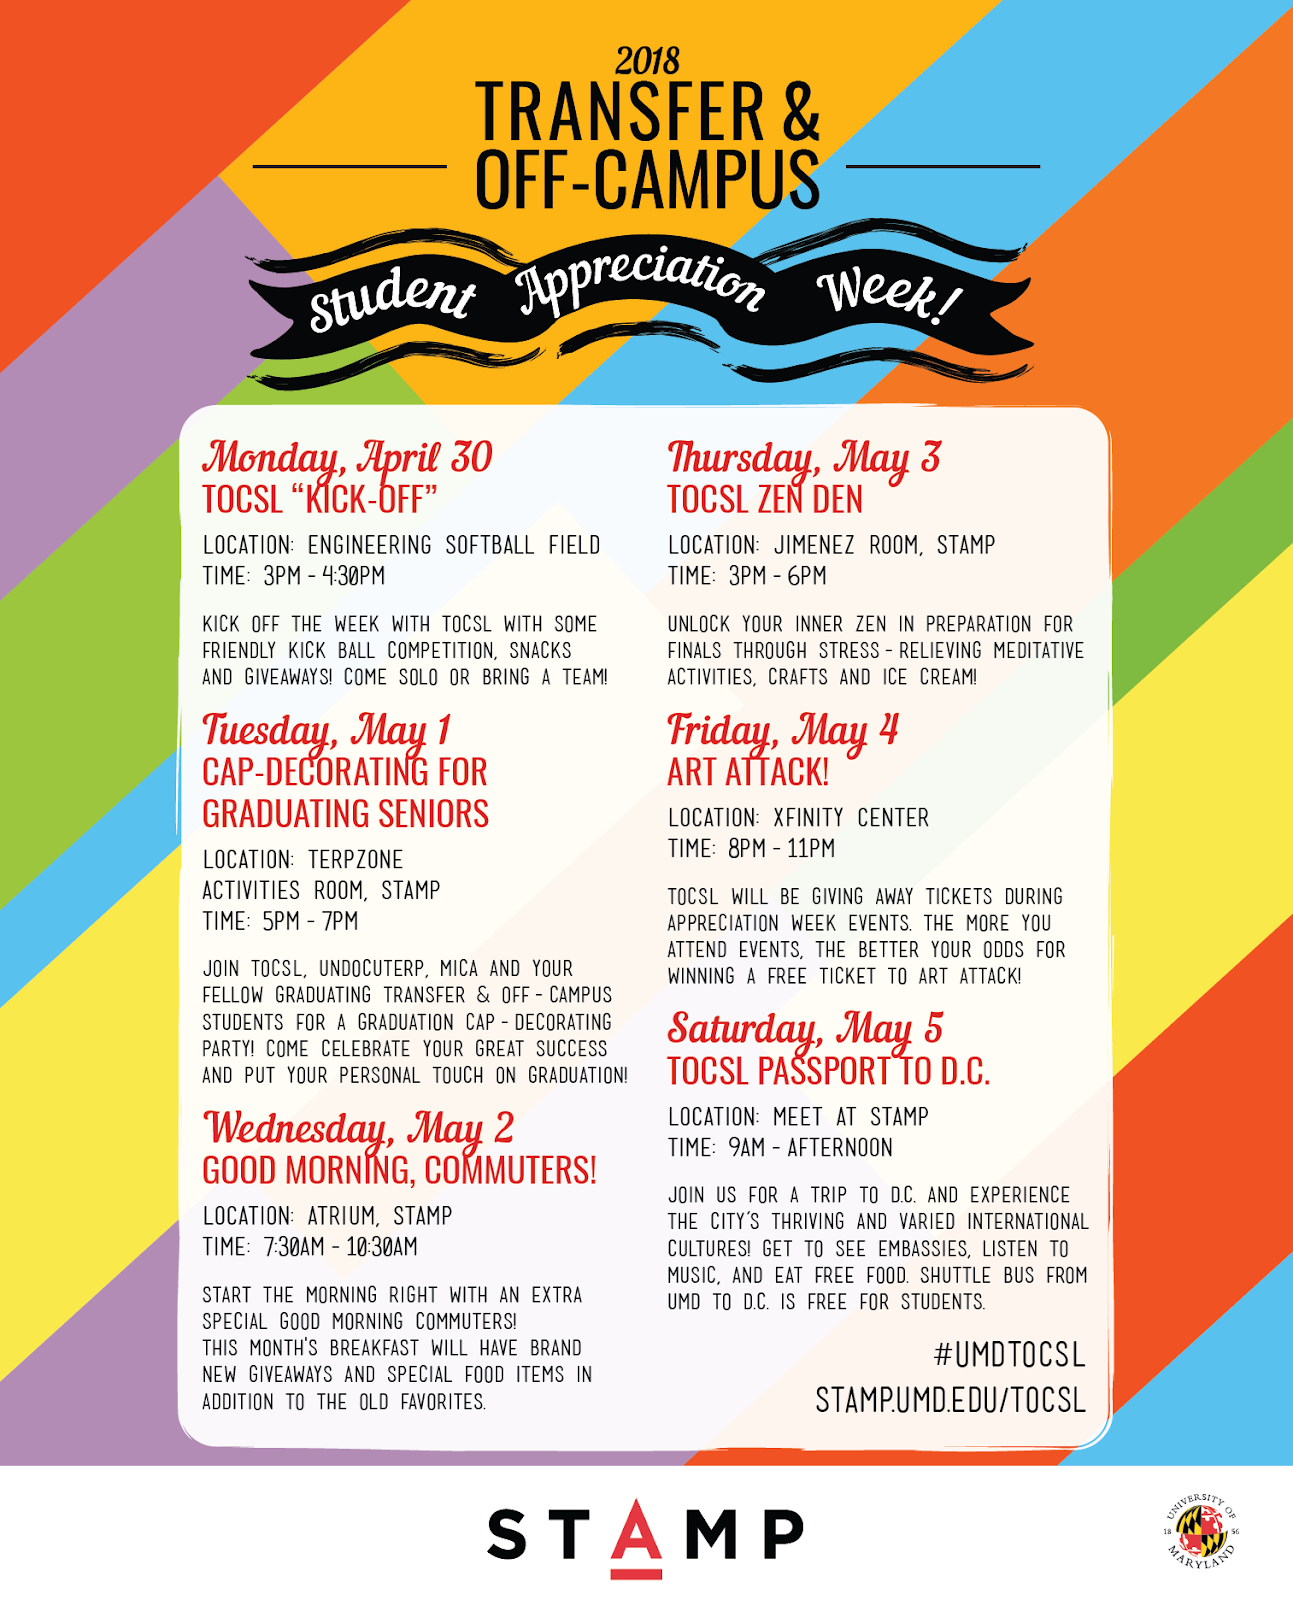 schedule of transfer and off-campus student appreciation week events